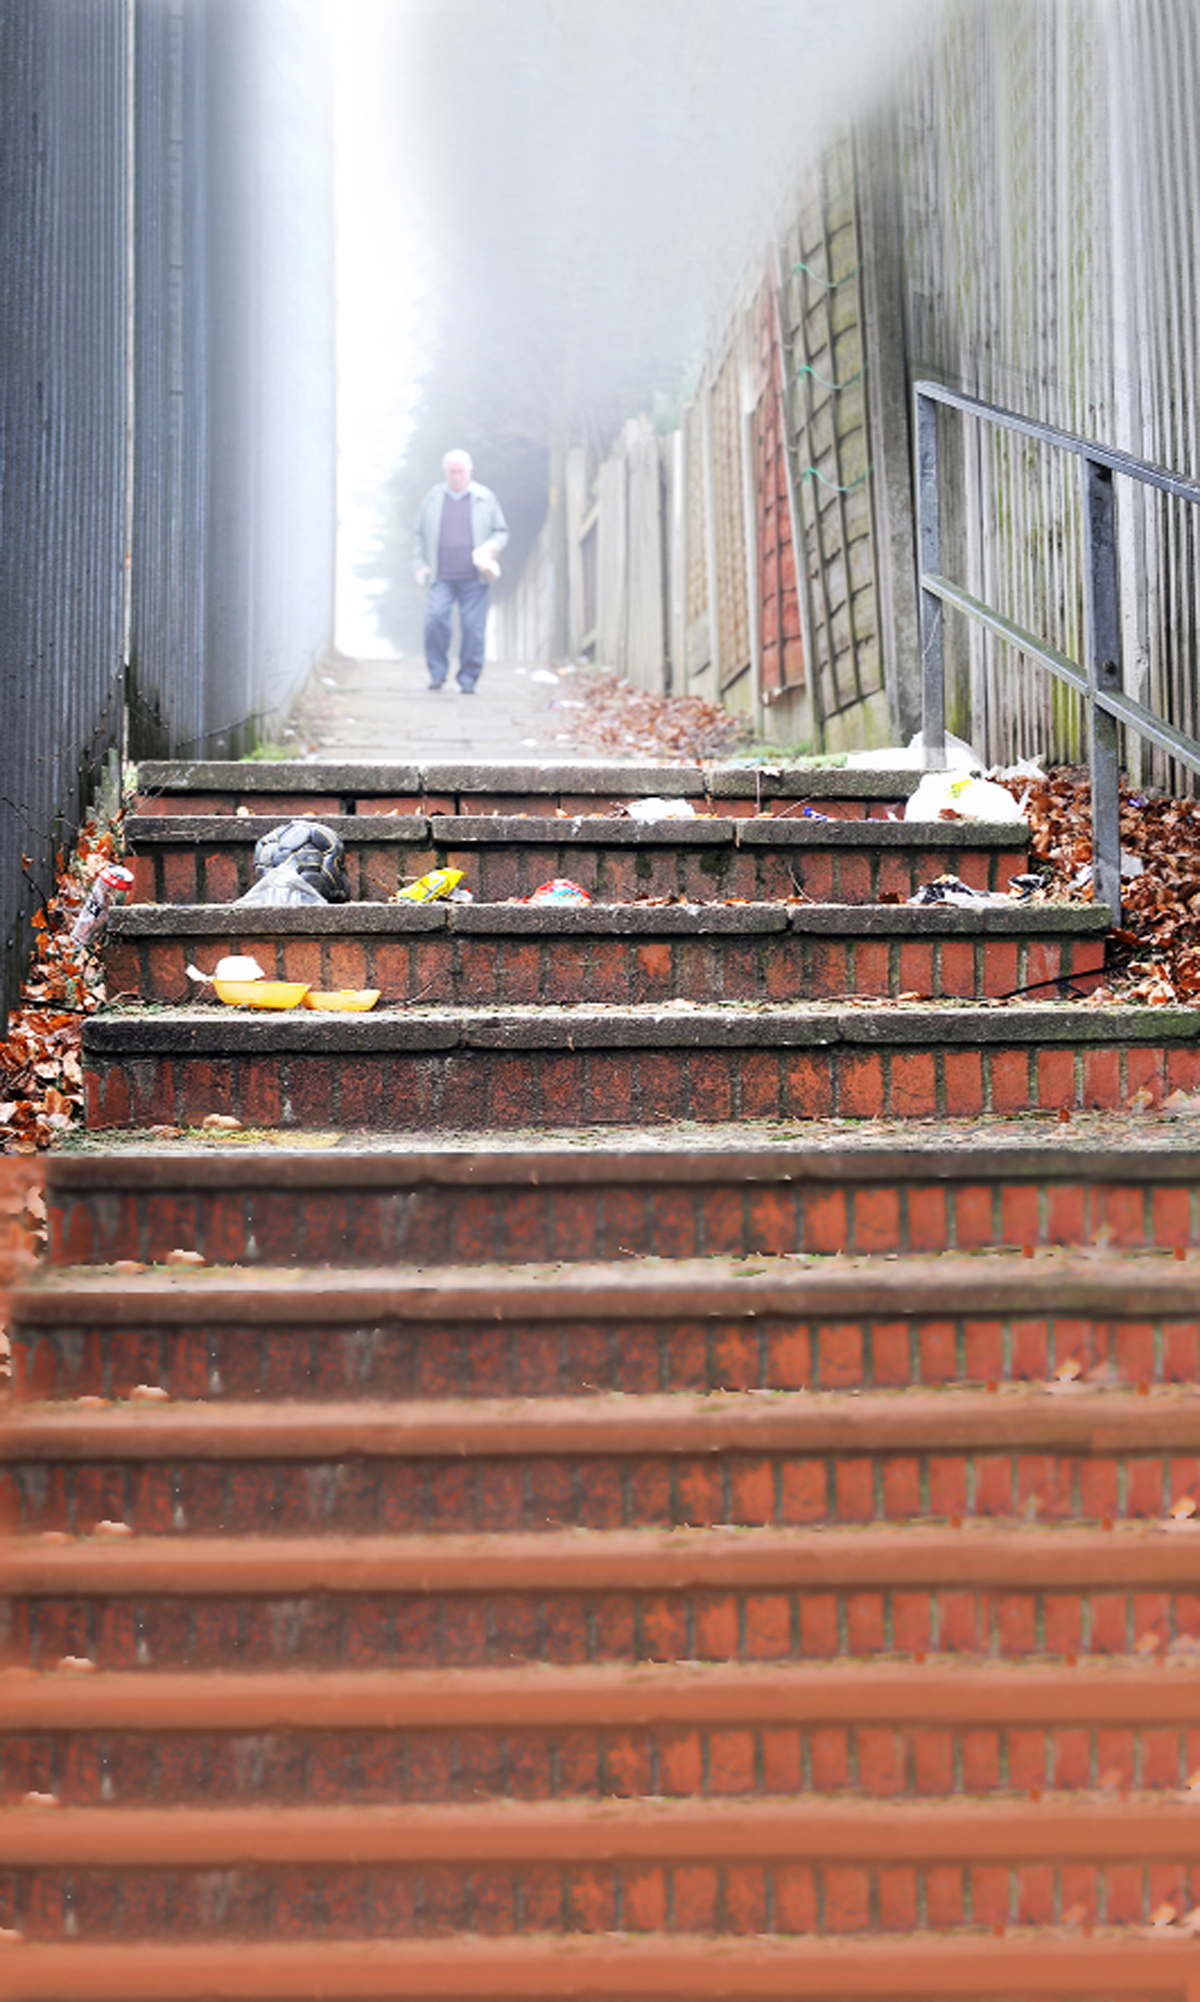 Blackburn resident clears mass of rubbish after losing patience with council